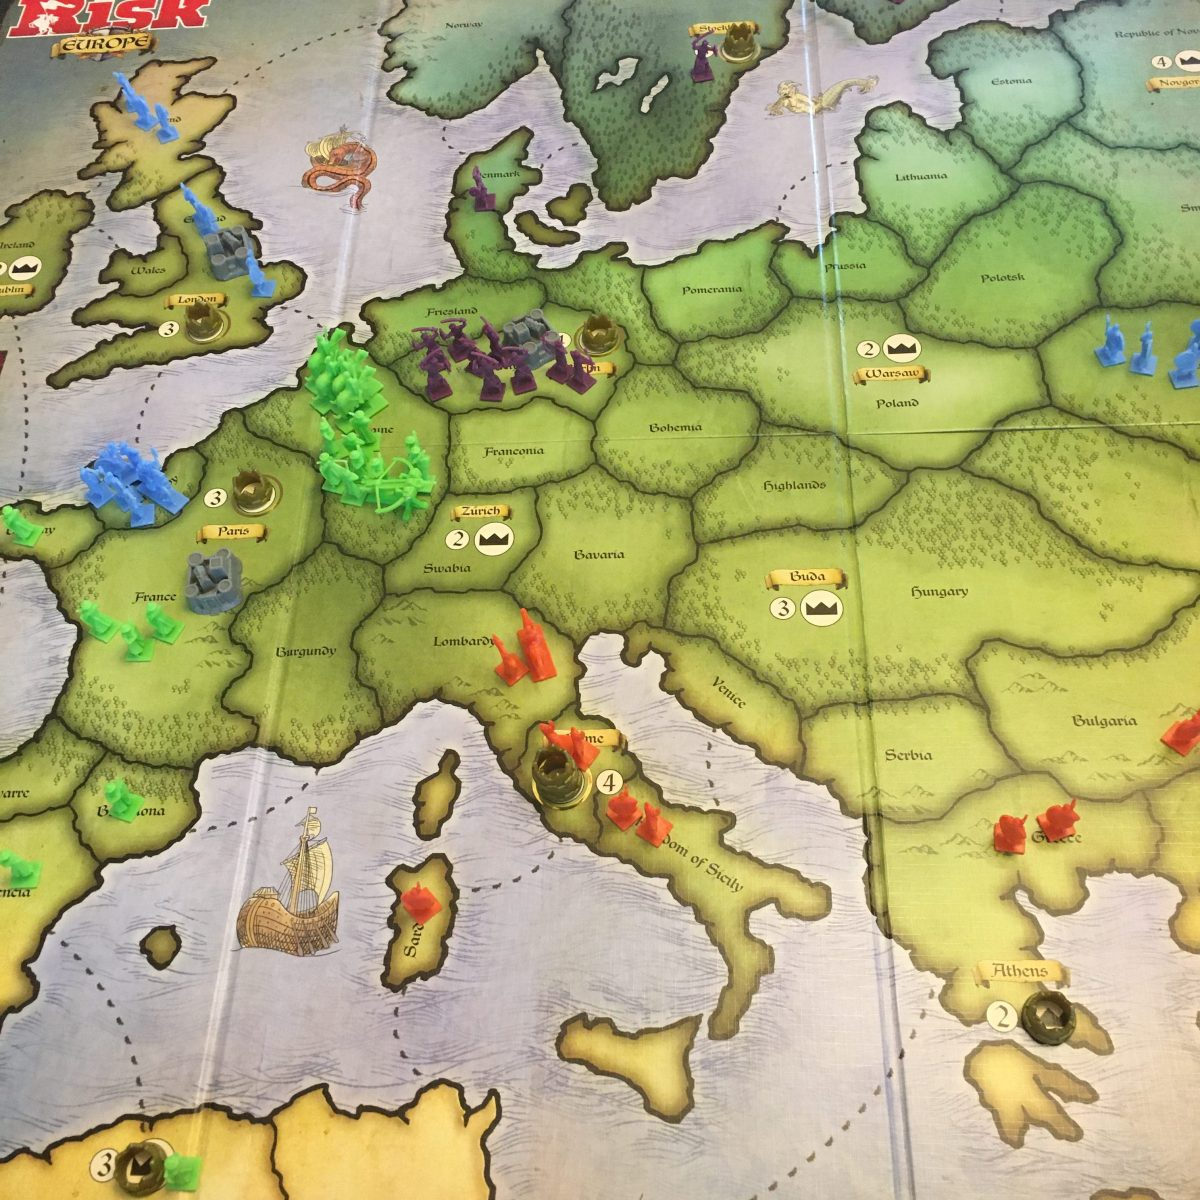 Turn 3 - Where'd all those green troops come from?